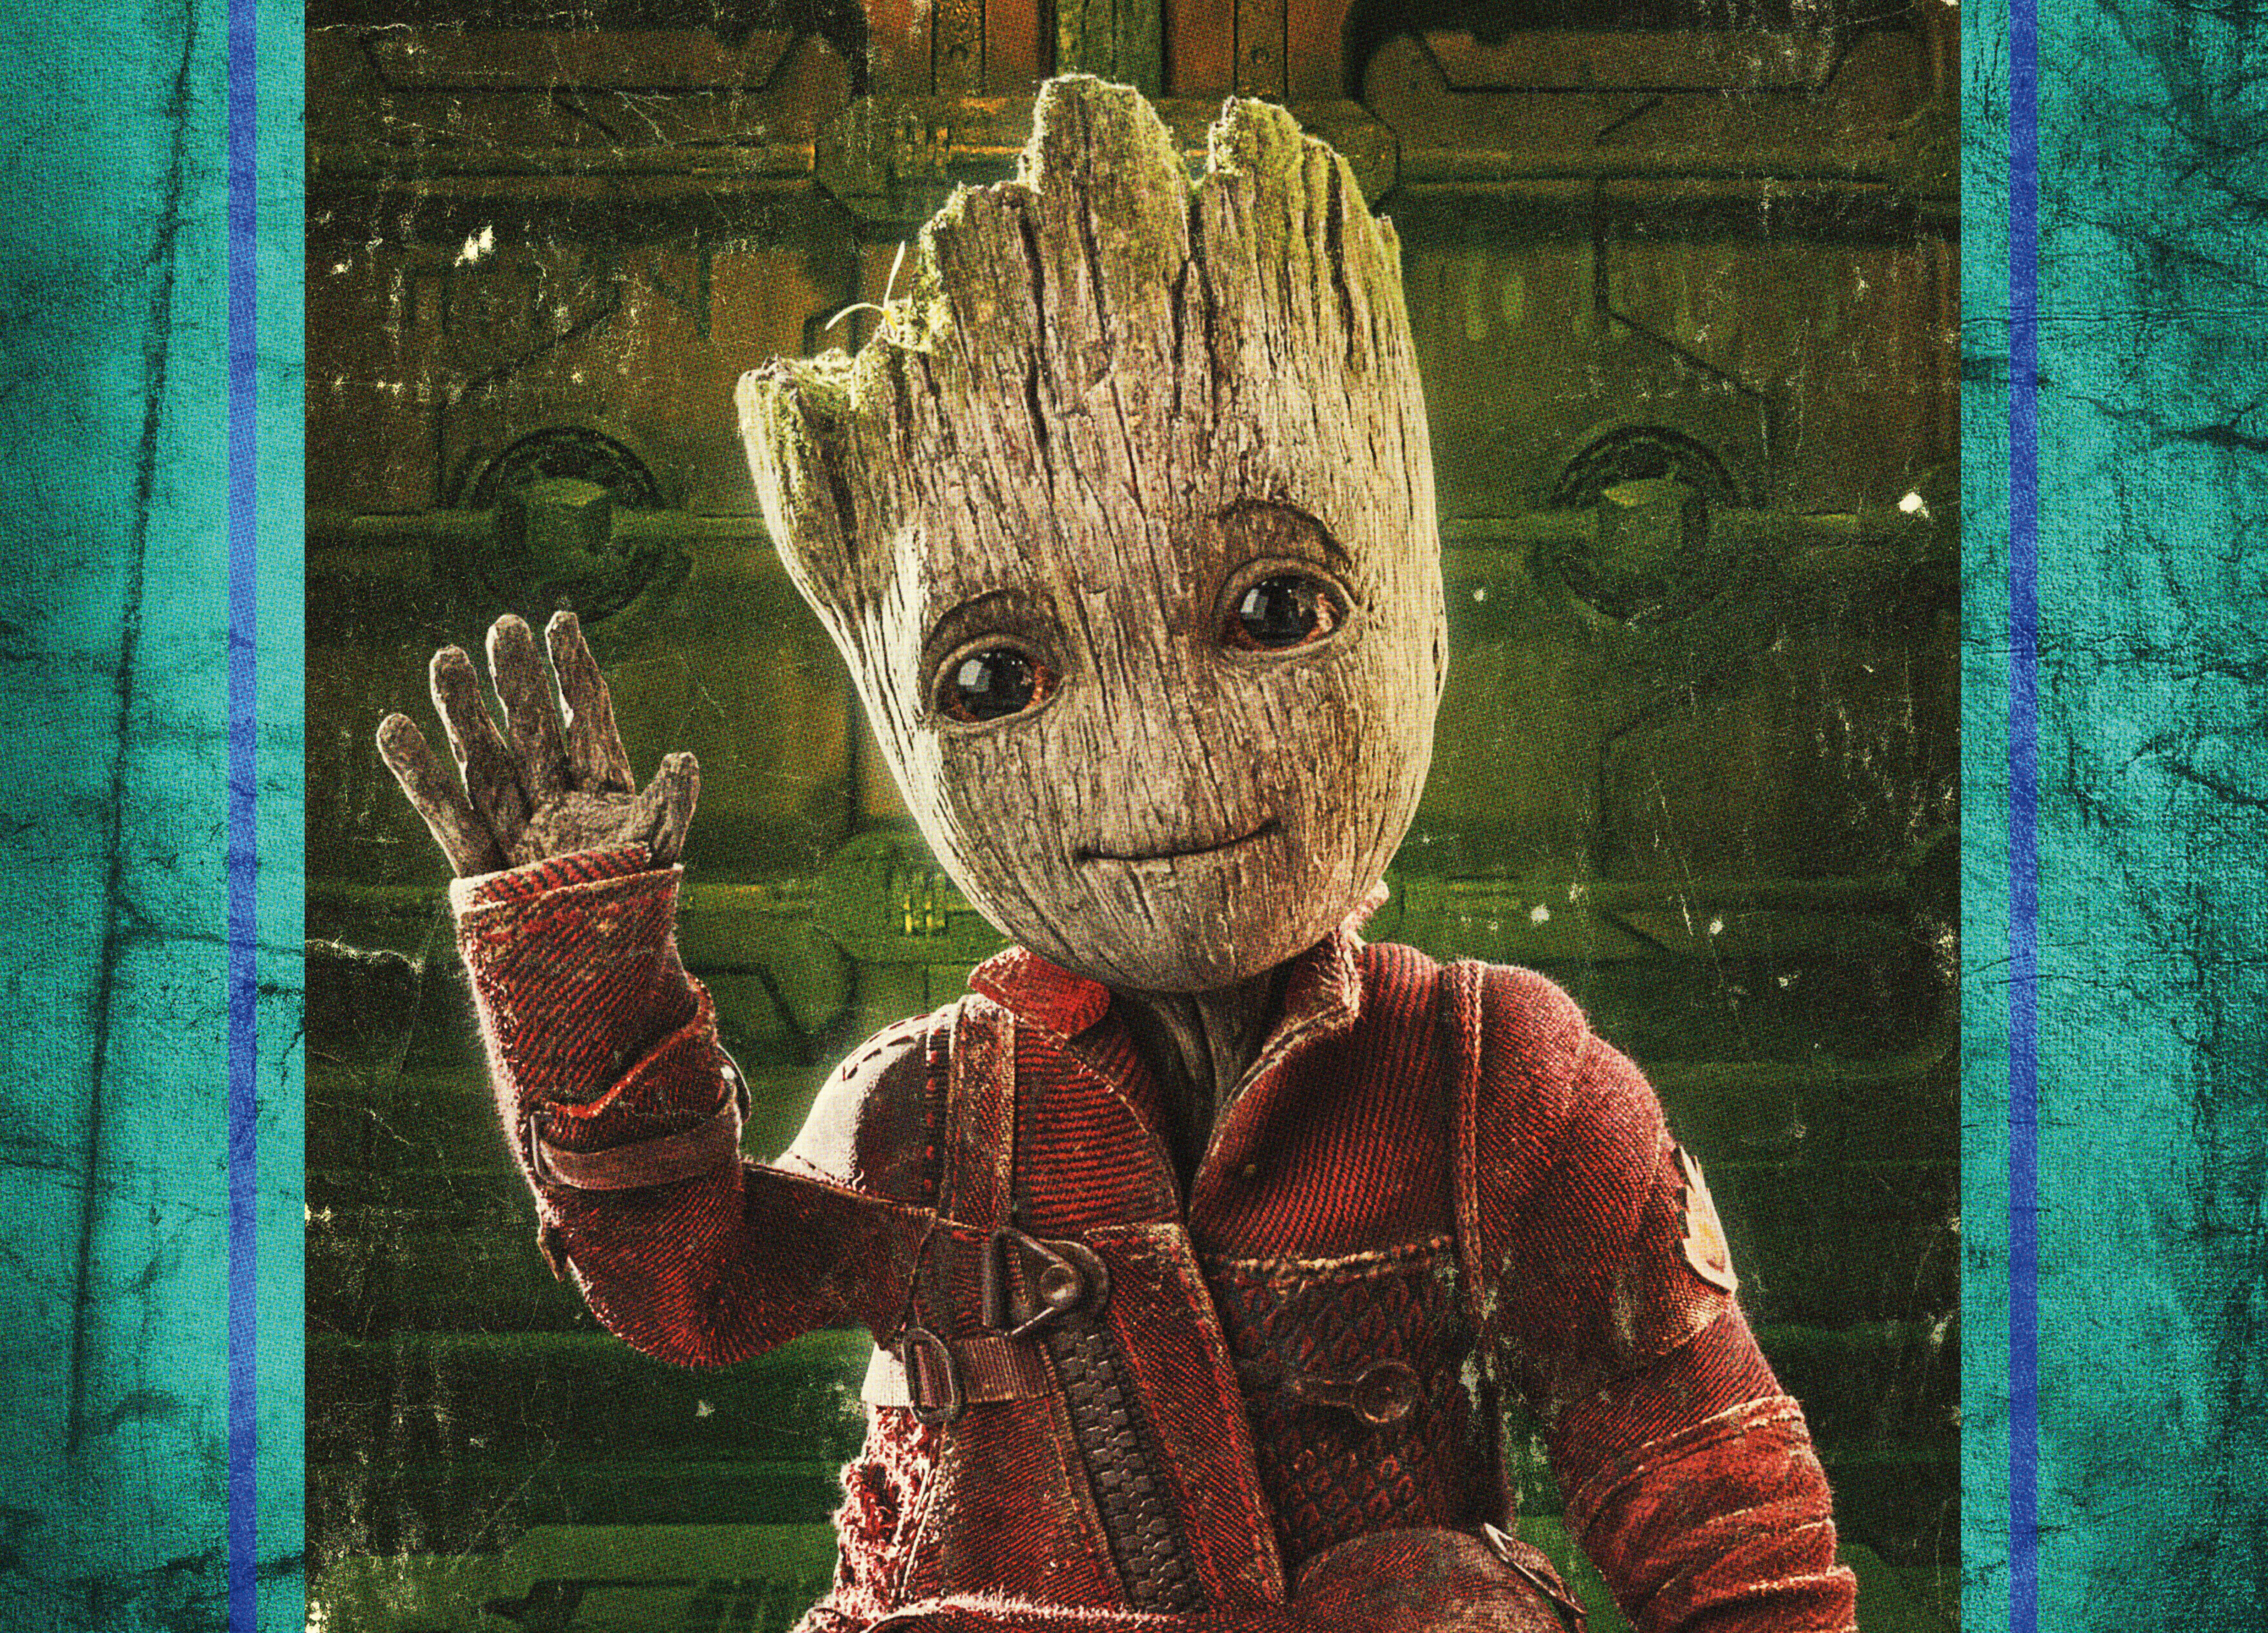 Baby Groot Guardians Of The Galaxy Vol 2 Hd Movies 4k: Baby Groot In Guardians Of The Galaxy Vol 2 4k, HD Movies